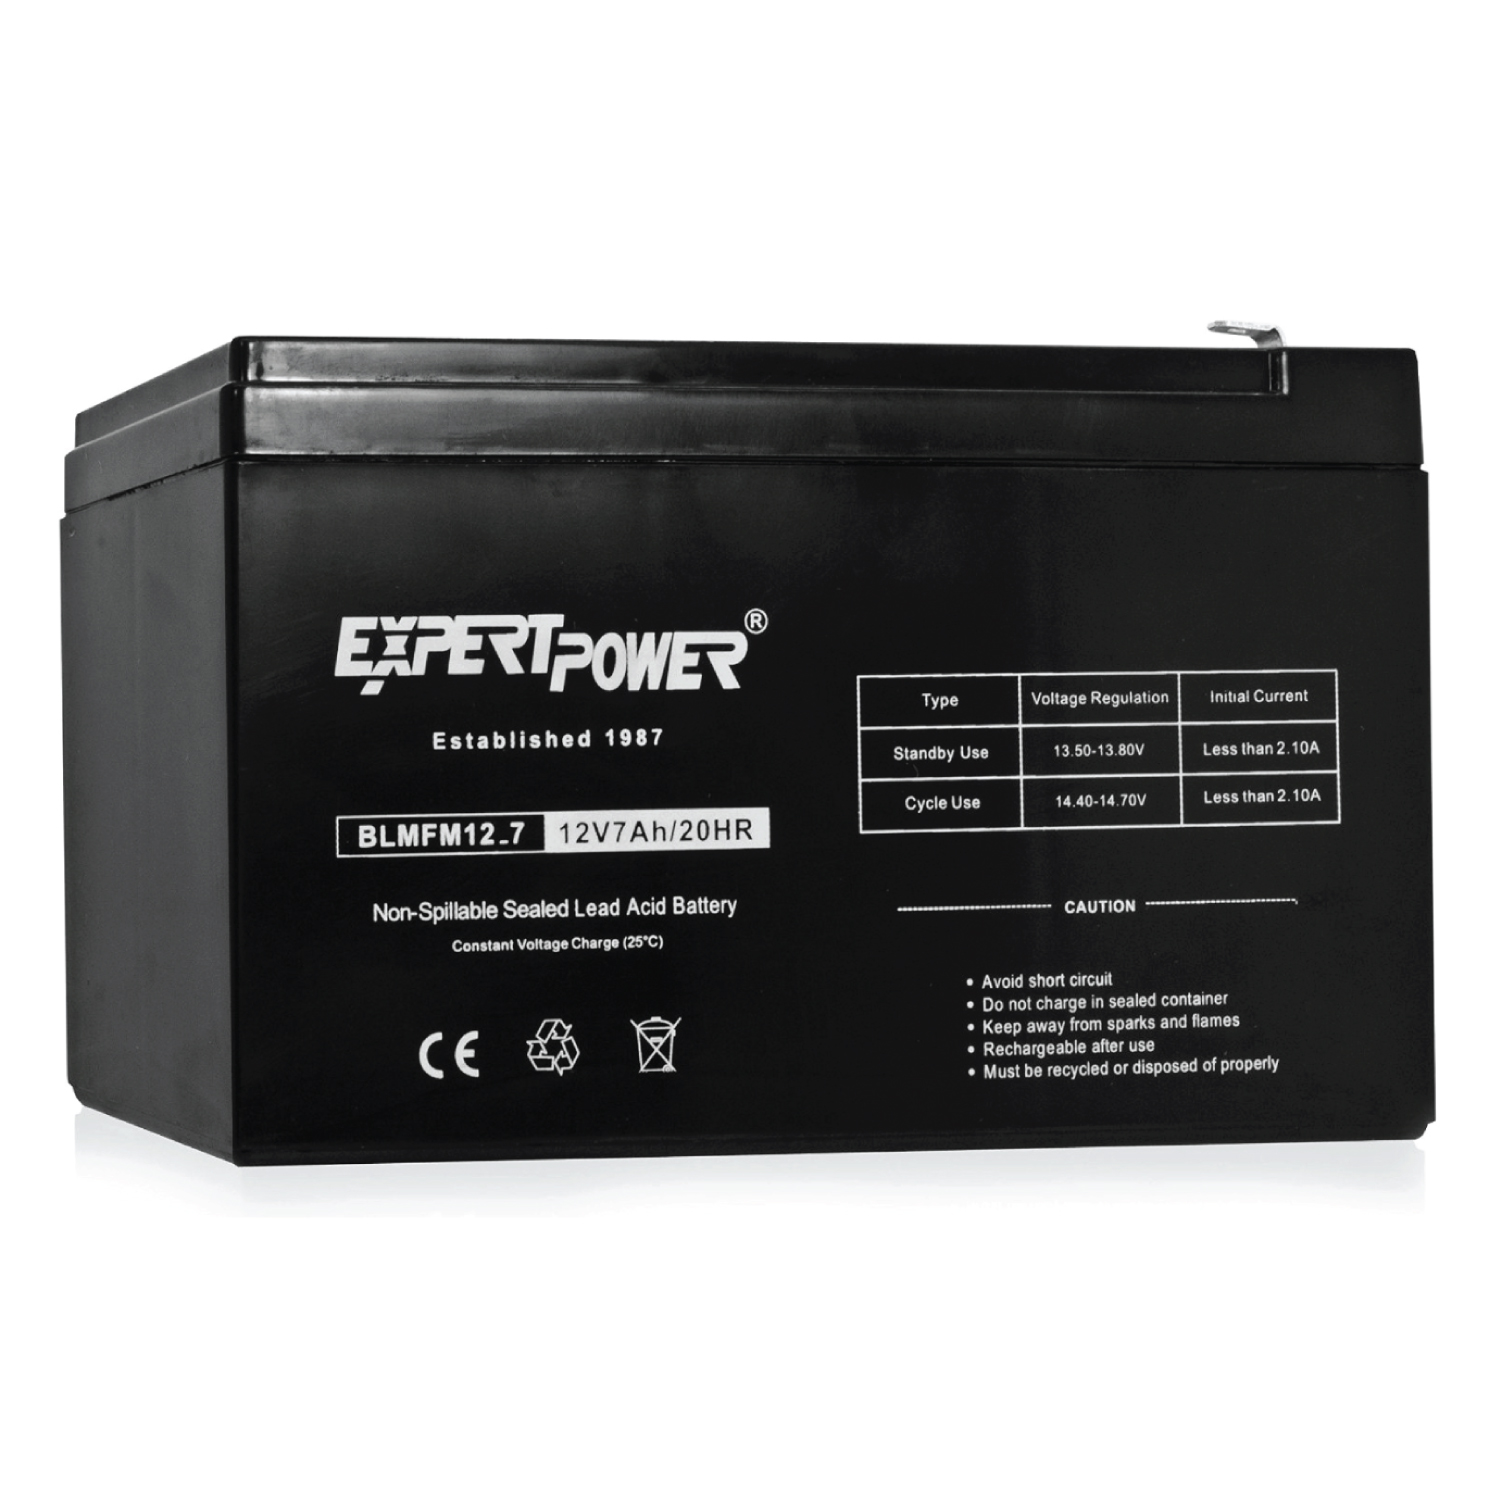 EXP1270 - 12 Volt 7 Amp Hour(12V 7Ah) Fully Sealed (SLA) Lead Acid Battery With Advanced Glass Mat Technology(AGM). Replacement for UPS, Scooters, Emergency lights, Cable boxes, and Fios units.